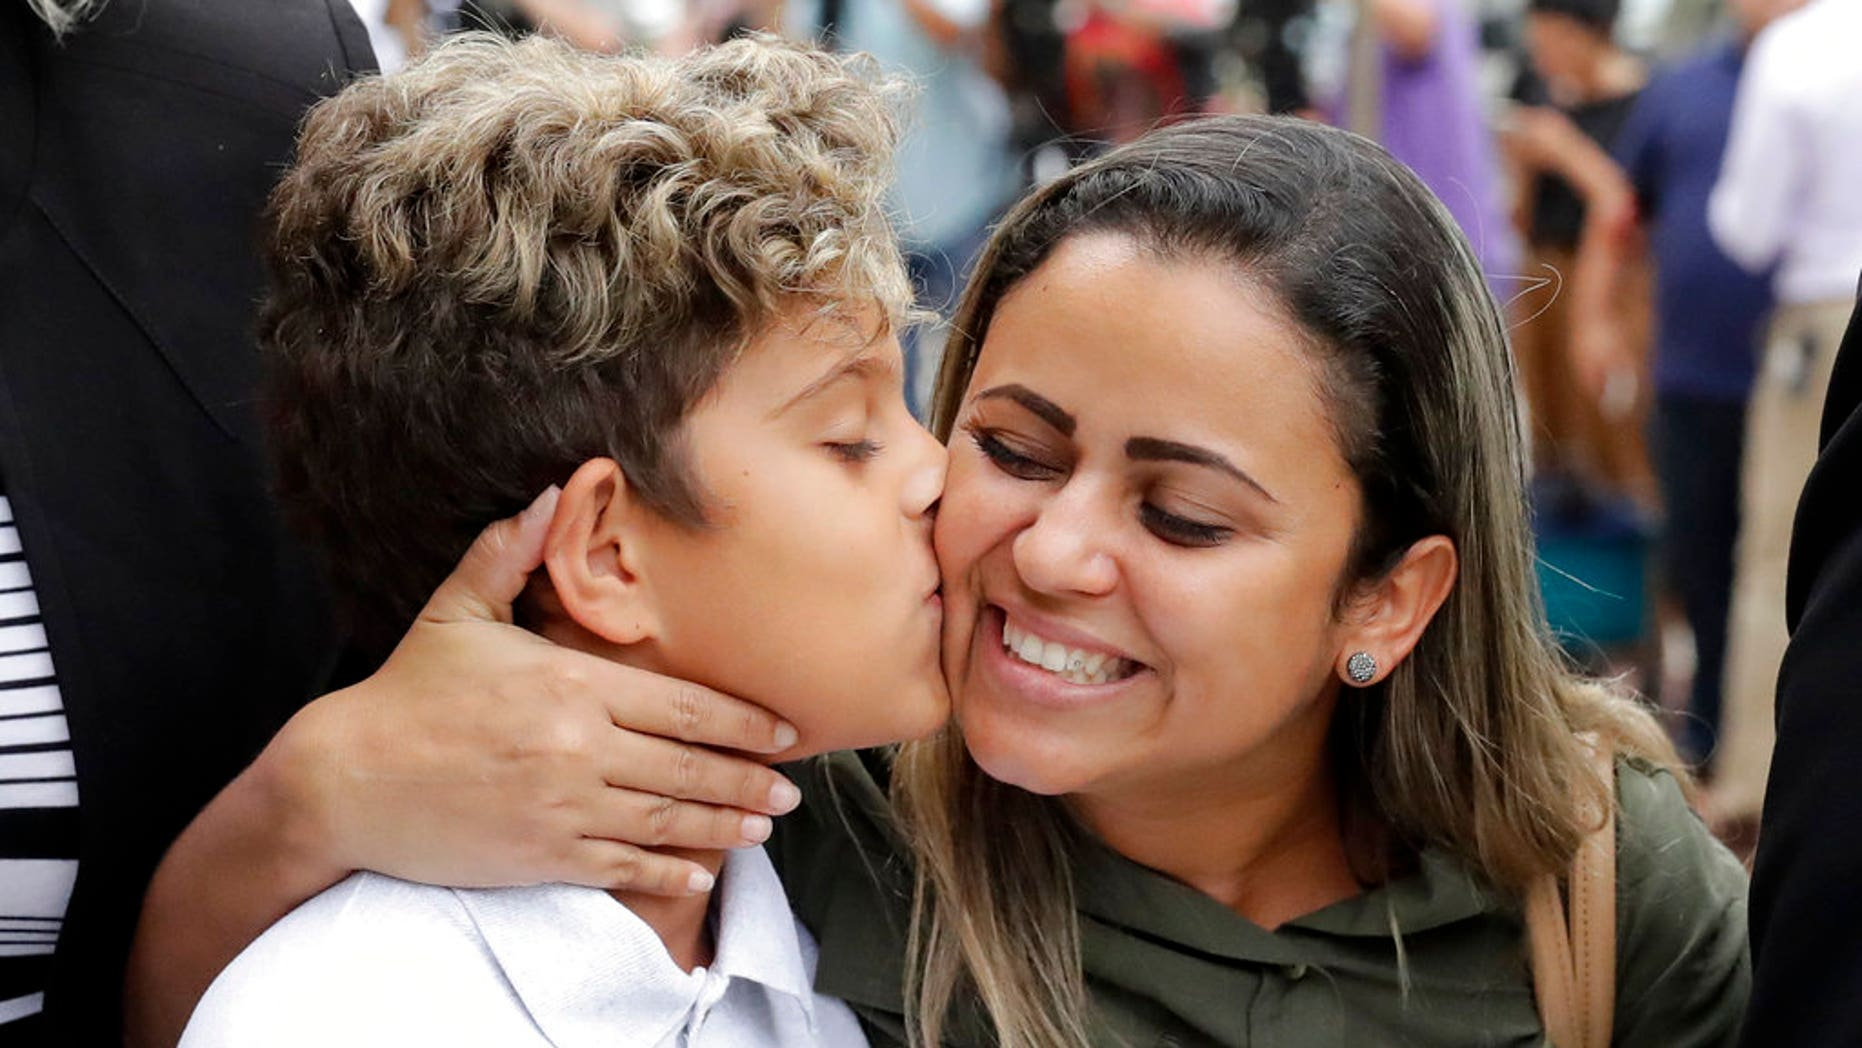 Diego Magalhaes, left, 10, kisses his mother Sirley Silveira, Paixao, an immigrant from Brazil seeking asylum with her son, after Diego was released from immigration detention, Thursday, July 5, 2018, in Chicago. (AP Photo/Charles Rex Arbogast)